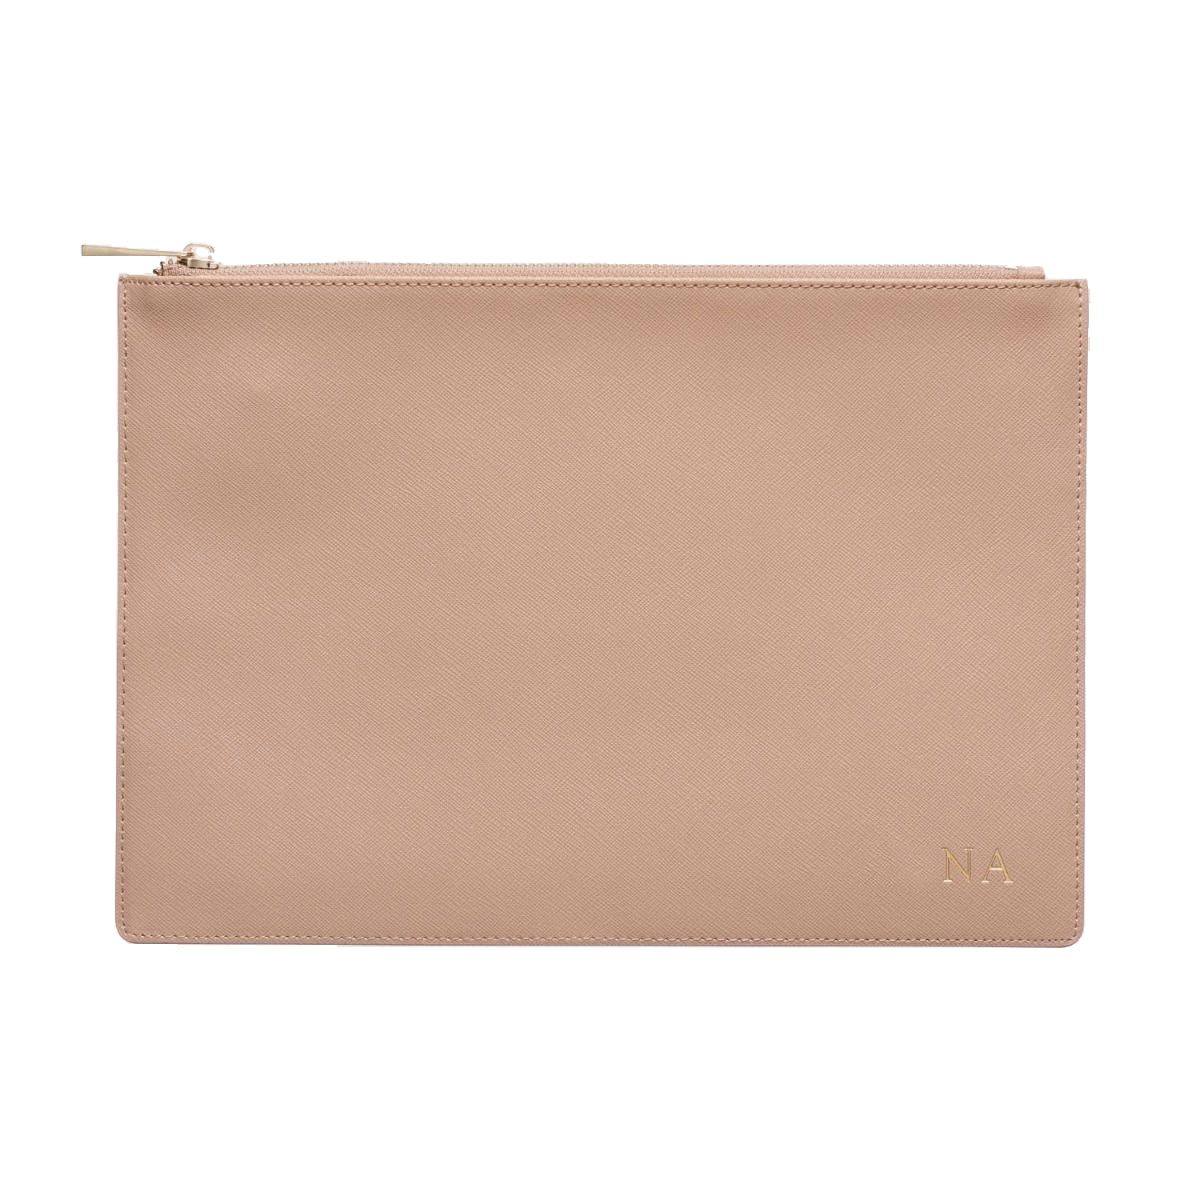 Pouch in Taupe Saffiano Leather - OLIVIA&CO.